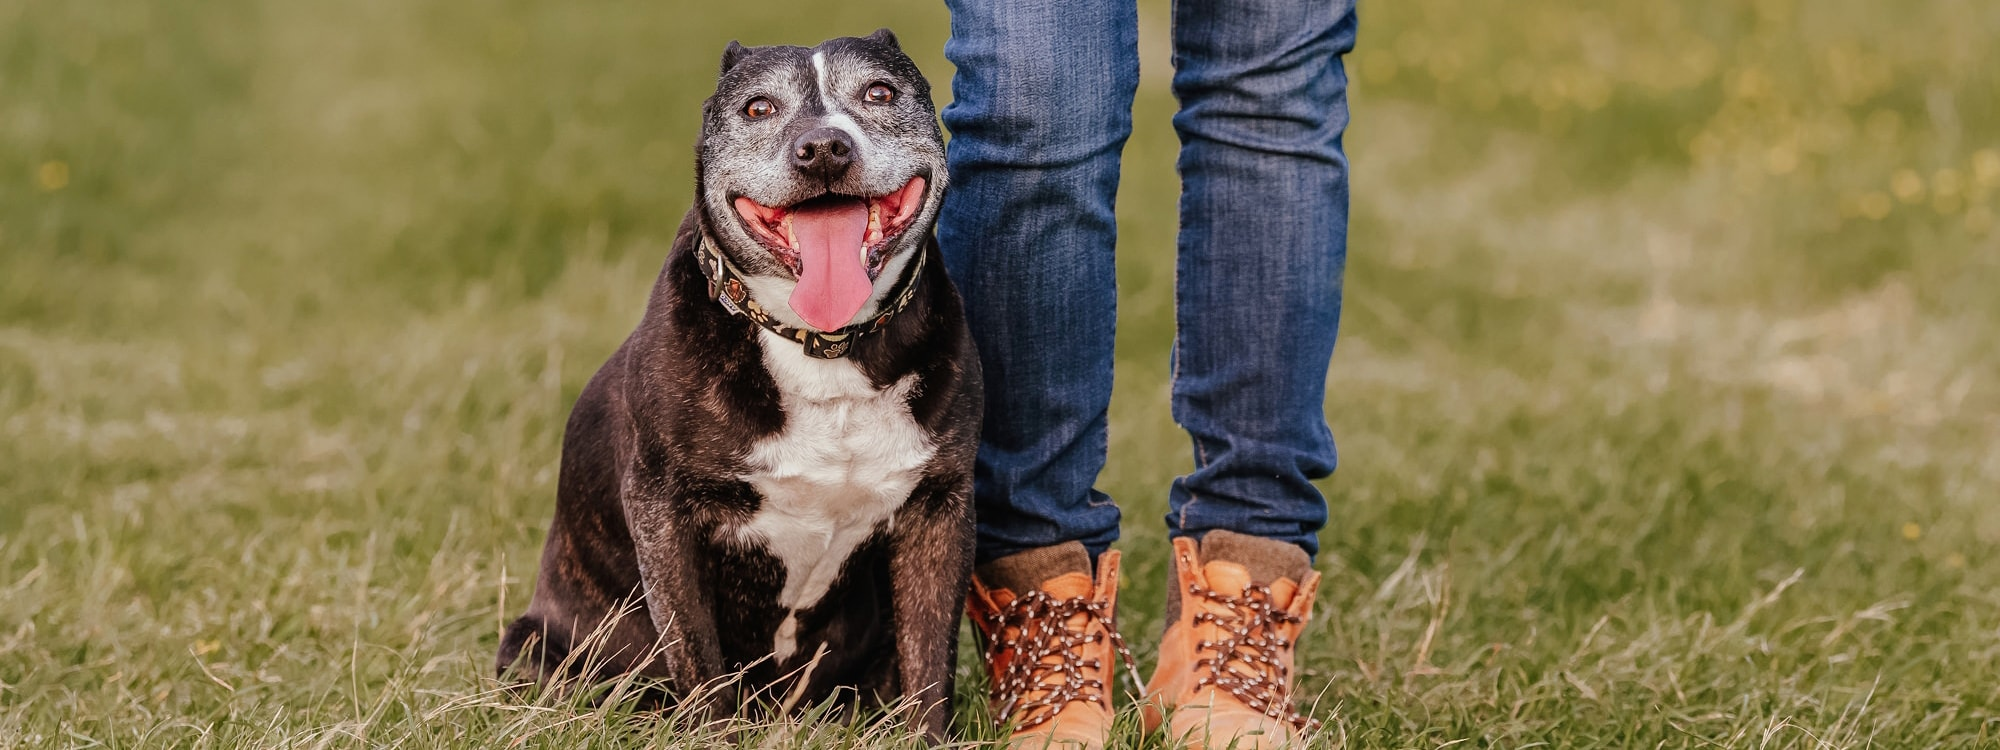 Owners legs as they stand with staffie dog photo shoot essex